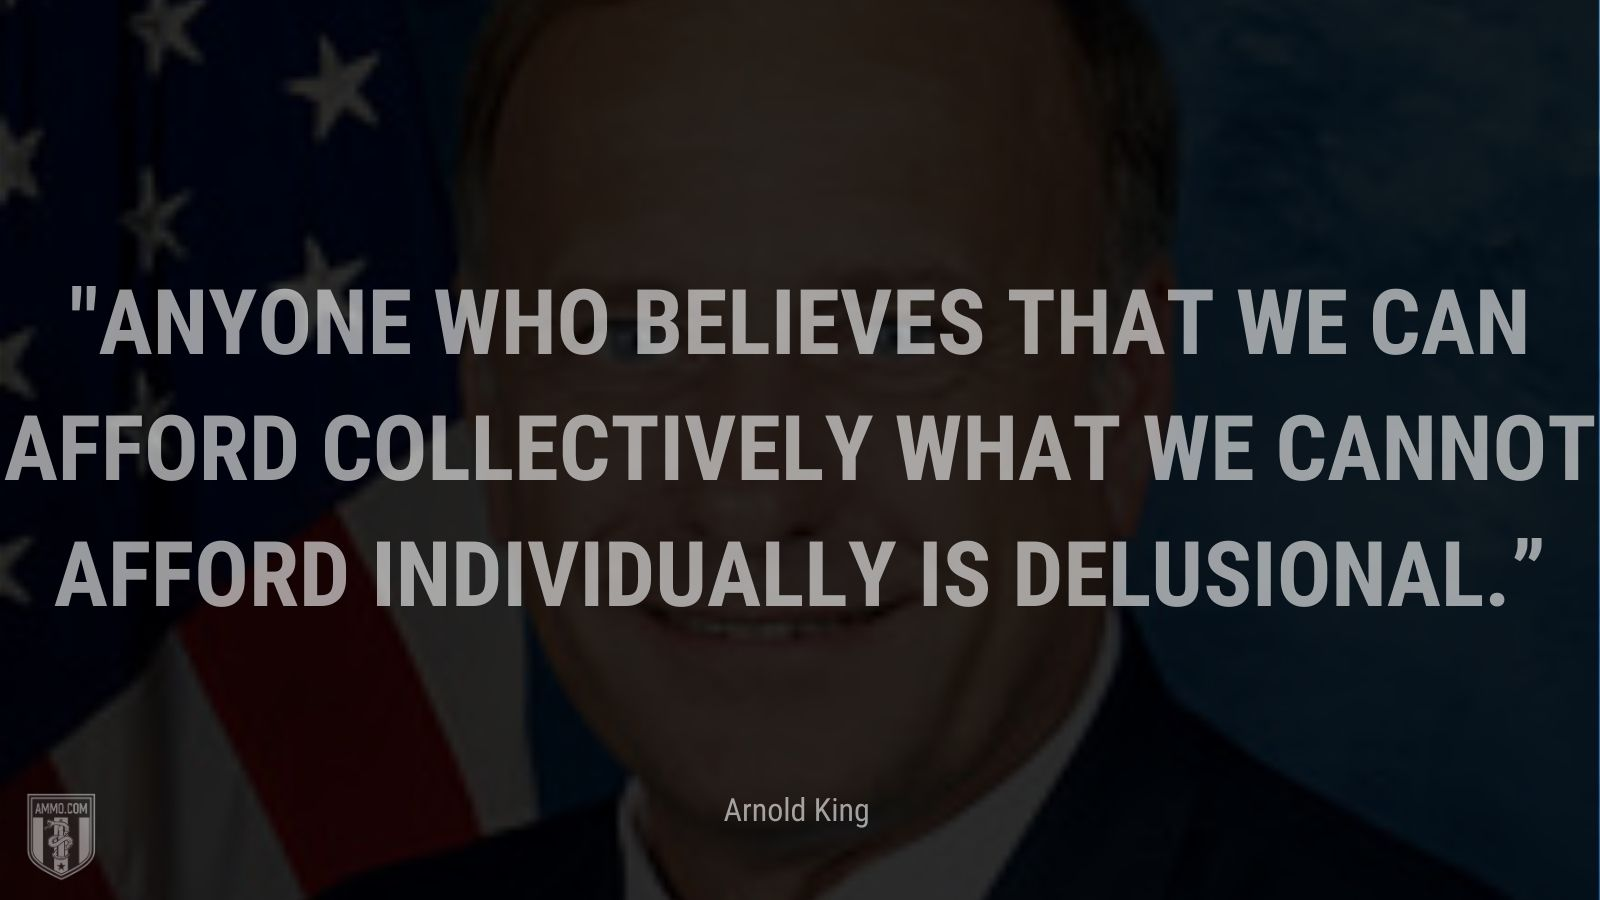 """""""Anyone who believes that we can afford collectively what we cannot afford individually is delusional."""" - Arnold King"""